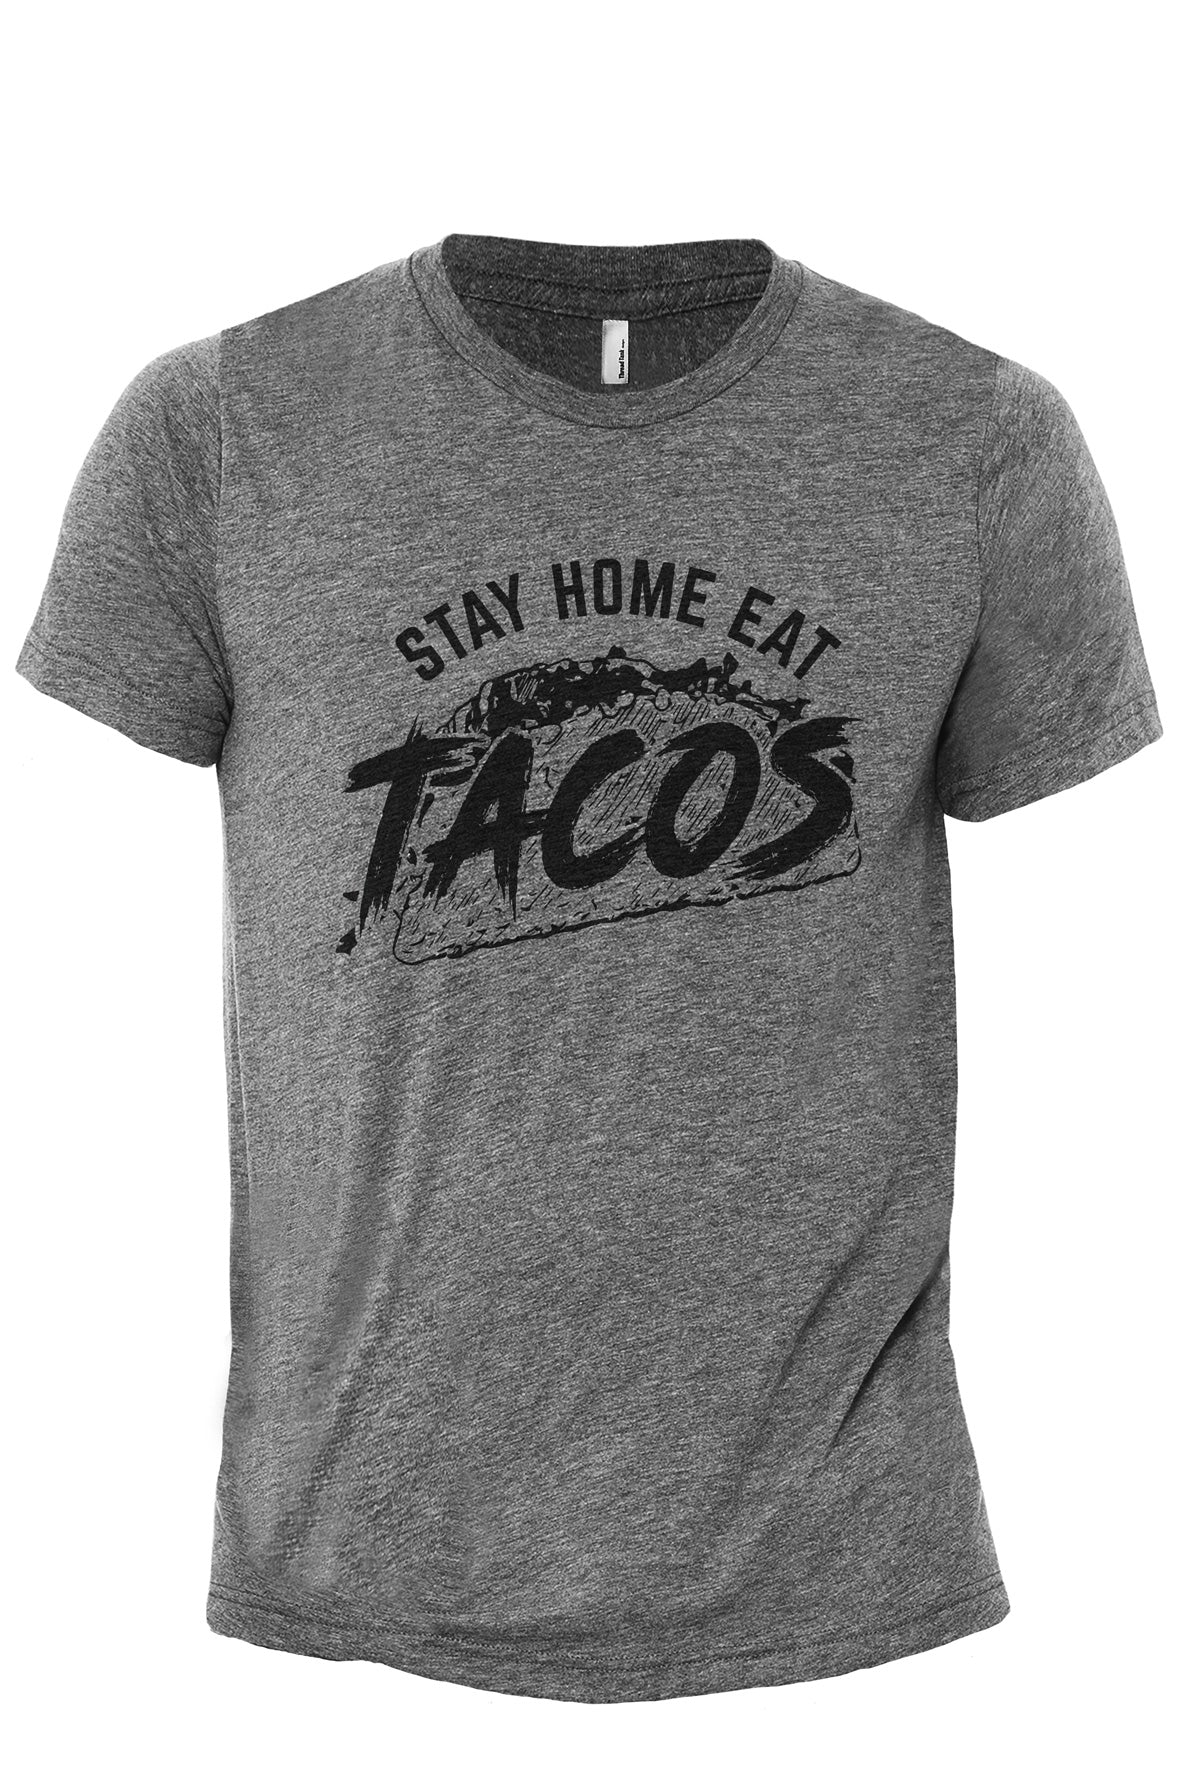 Stay Home Eat Taco Heather Grey Printed Graphic Men's Crew T-Shirt Tee